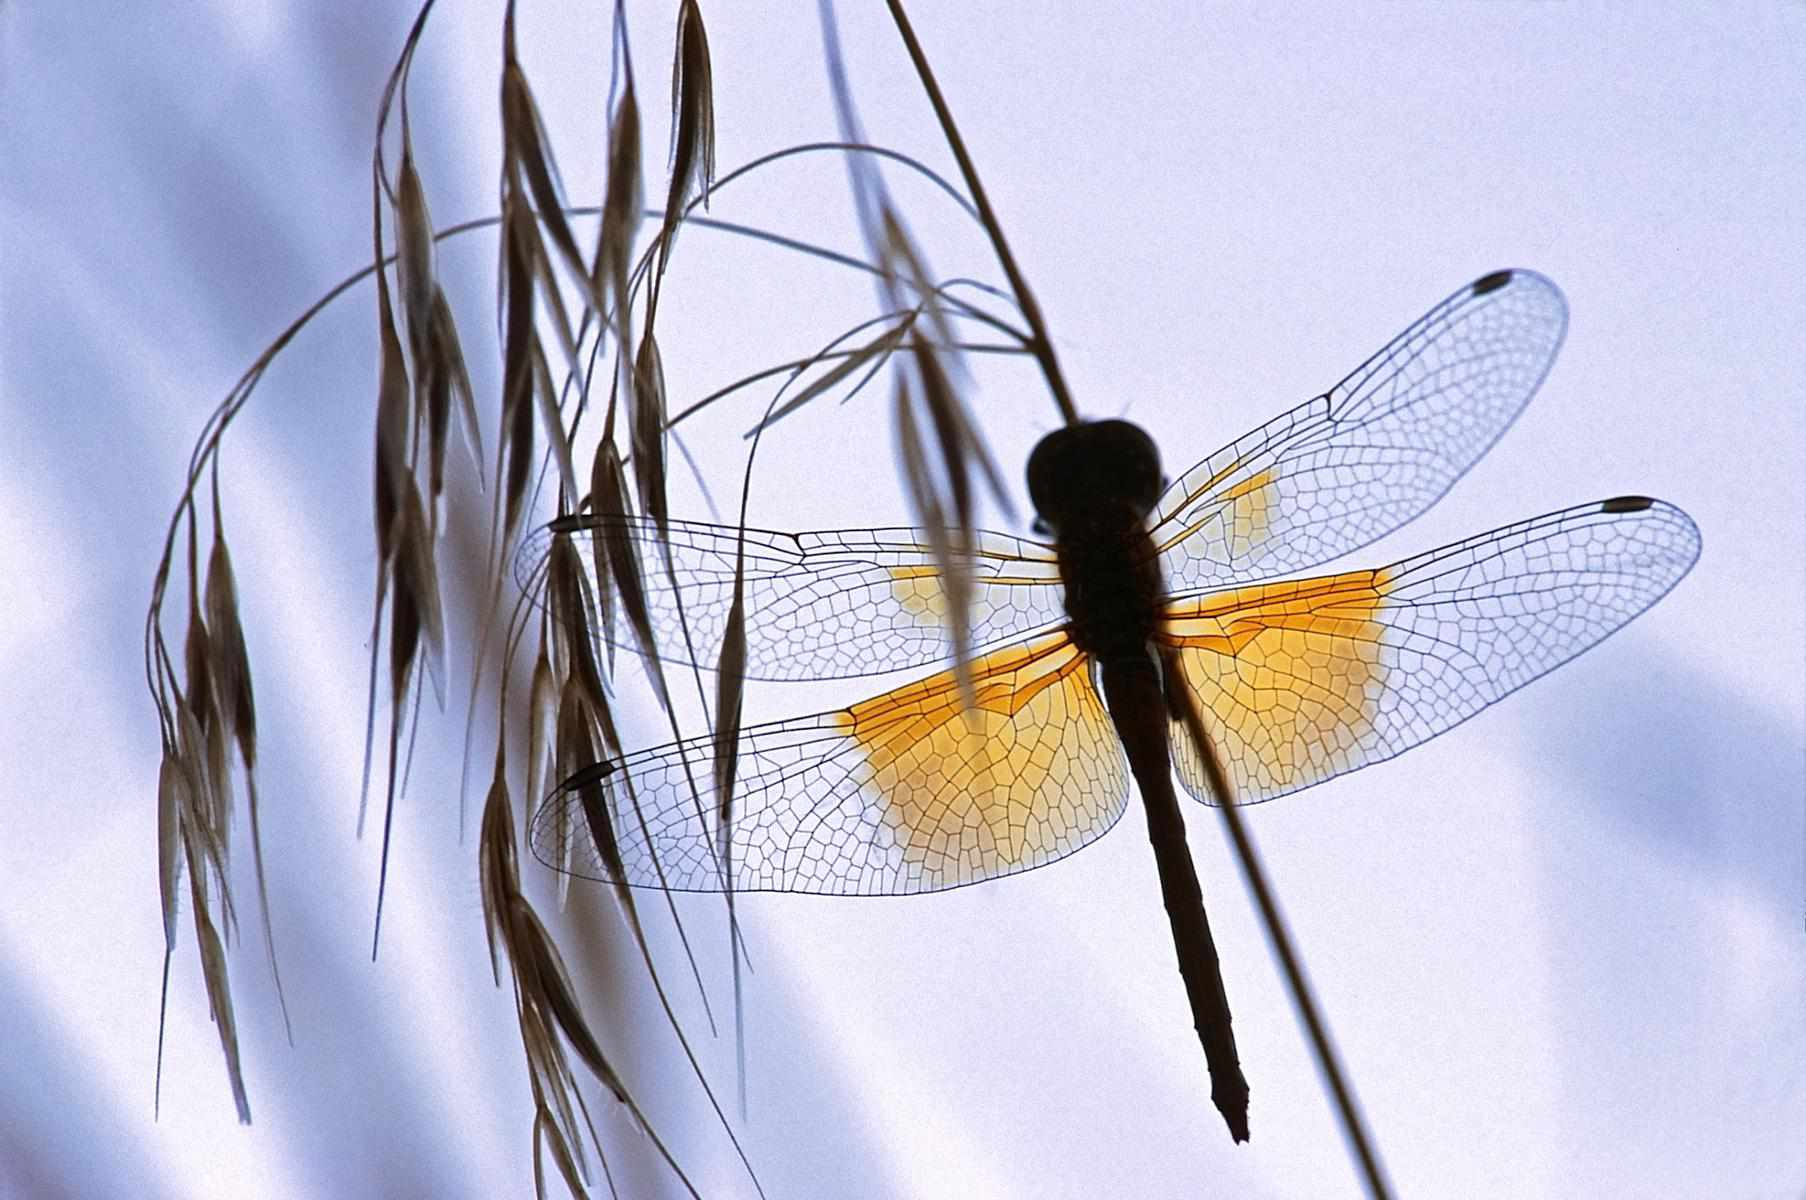 Insects And Arachnids As Spiritual Totems